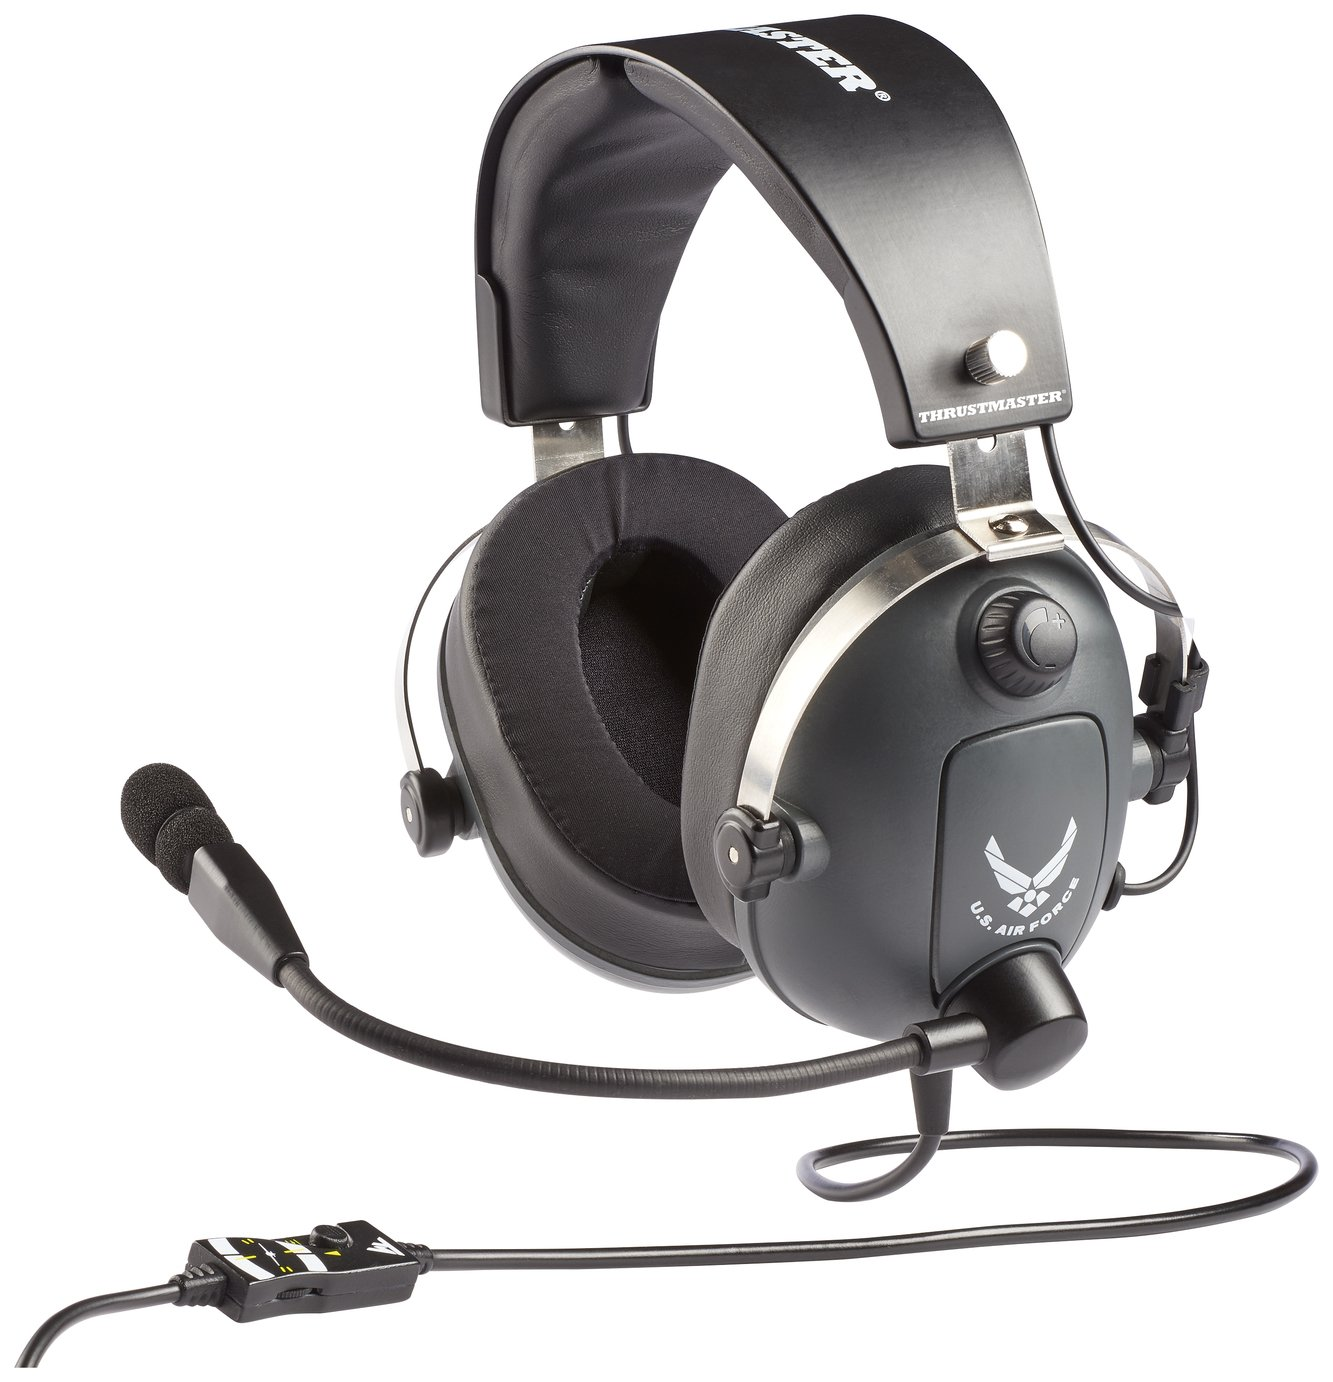 Thrustmaster T. Flight US Airforce Xbox One, PS4, PC Headset